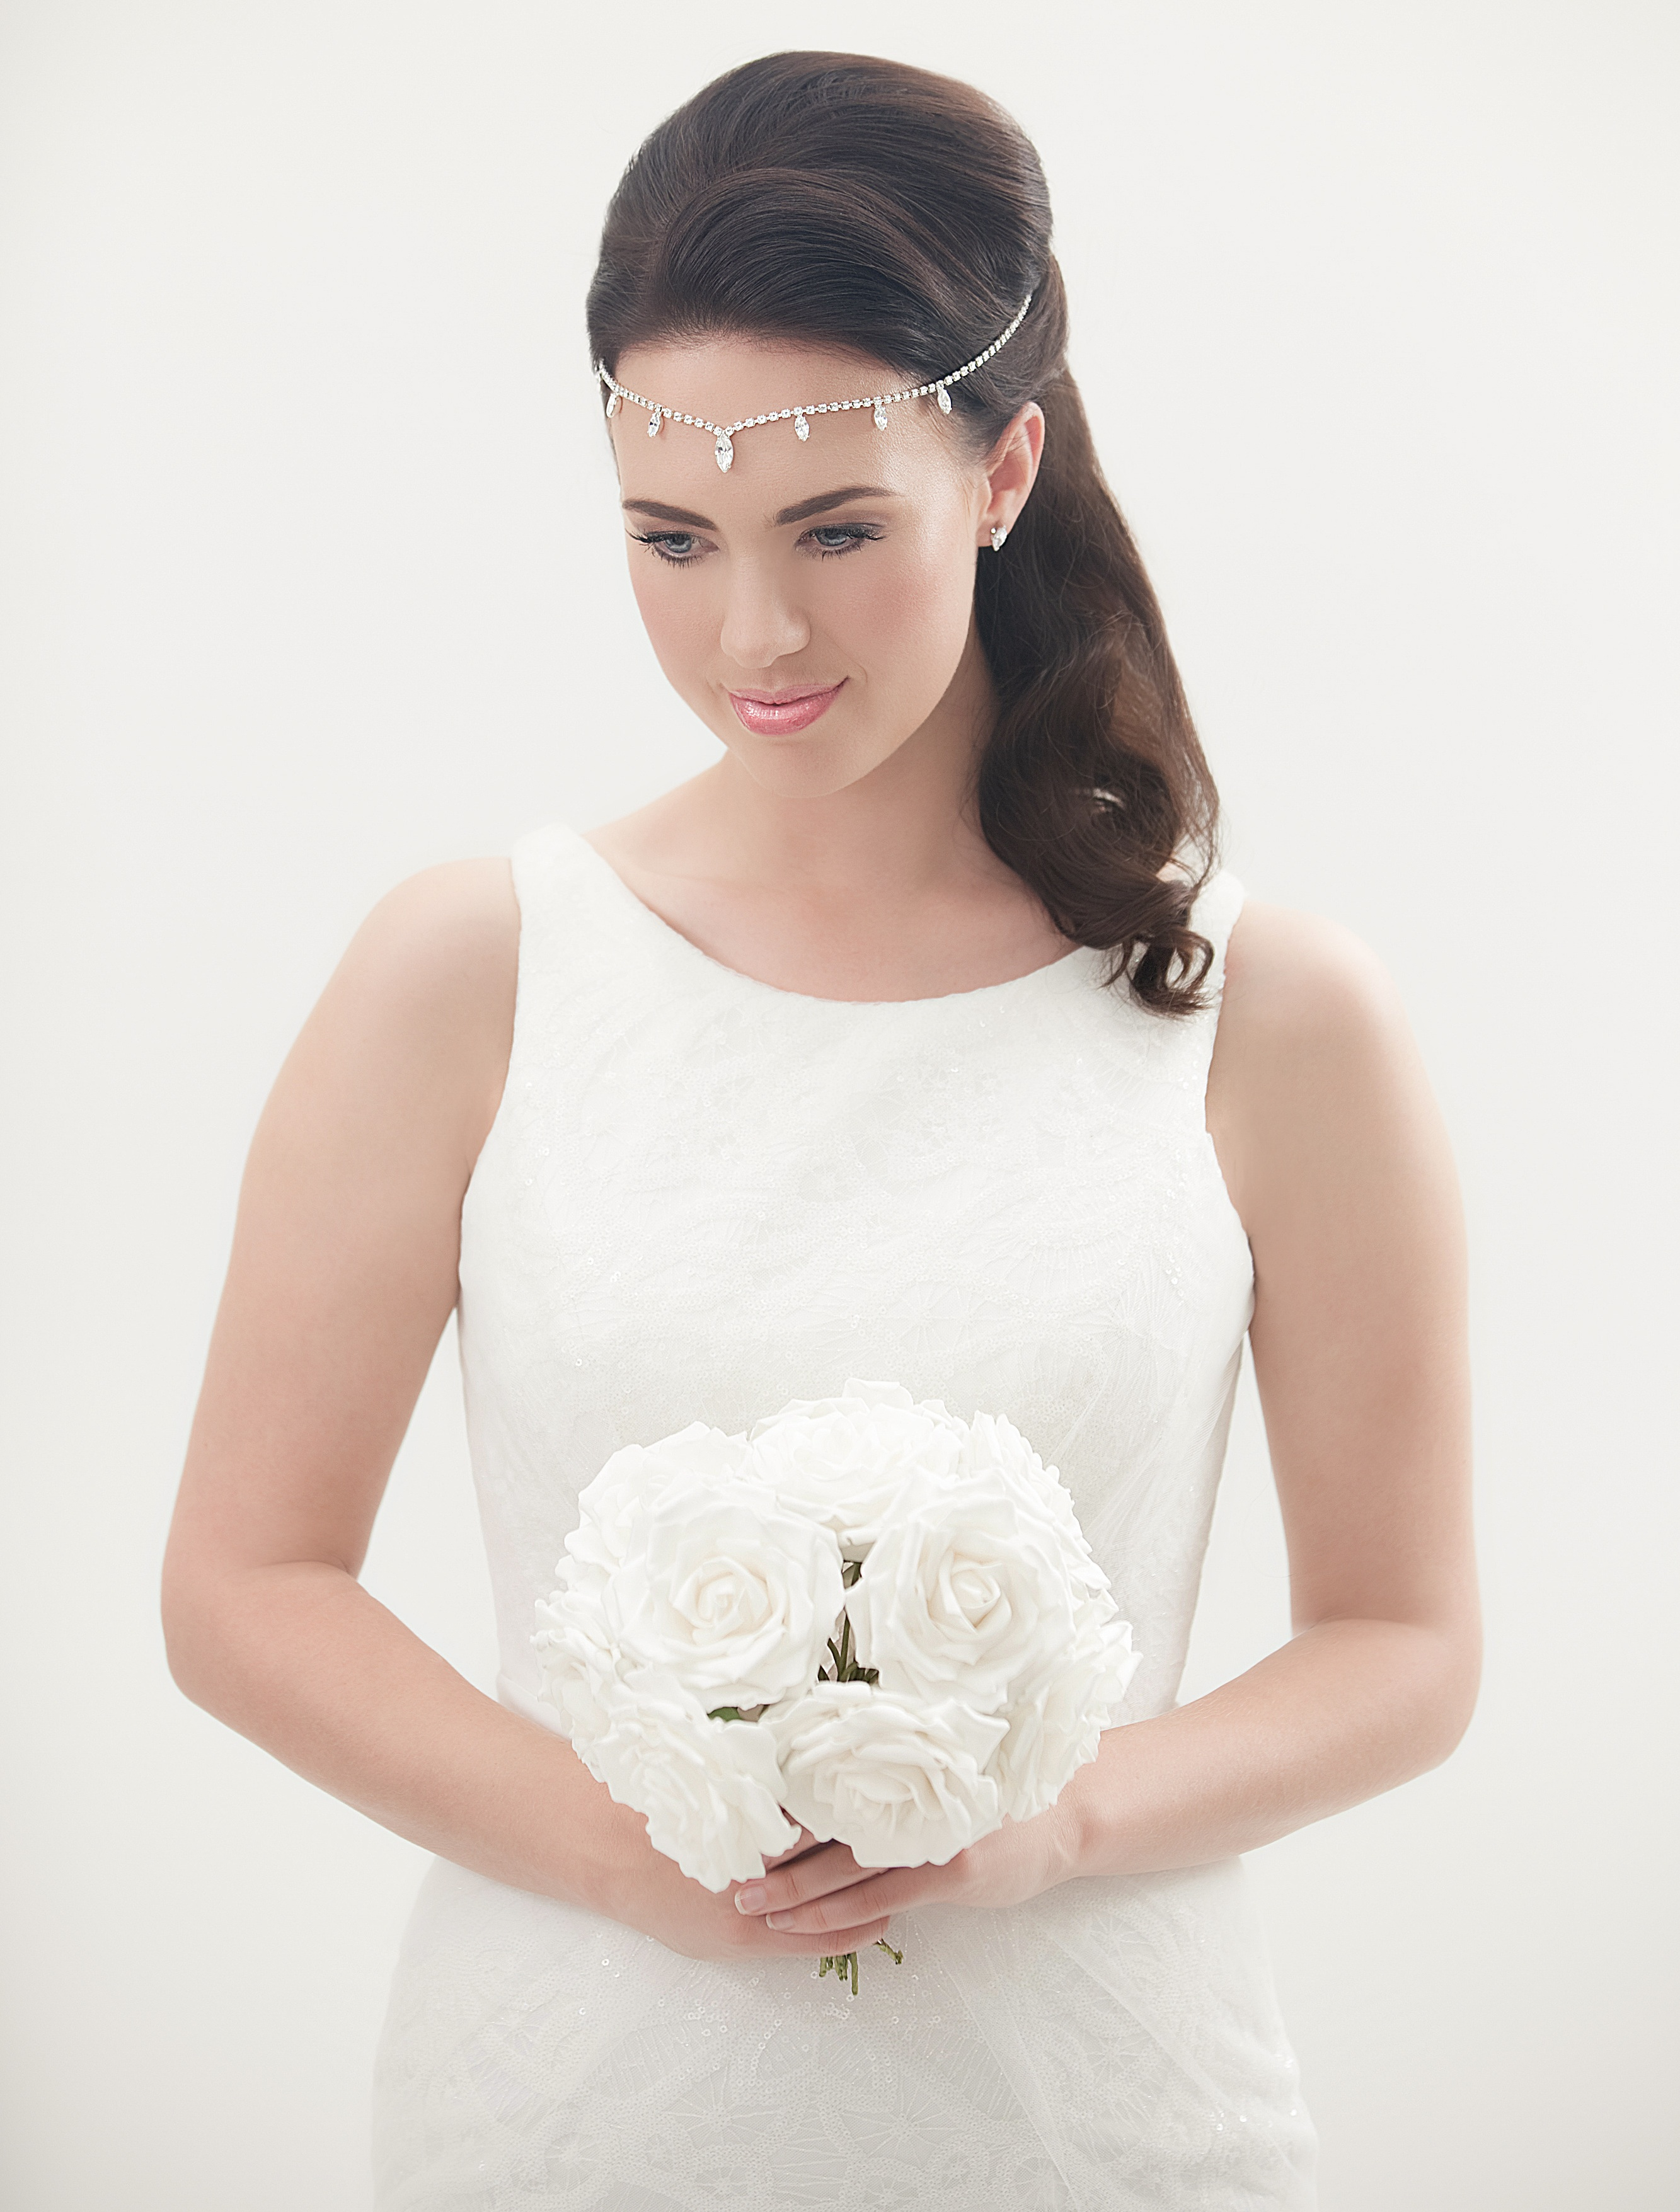 New Vintage Style Bridal Forehead Bands Offer Brides To Be Four New Looks